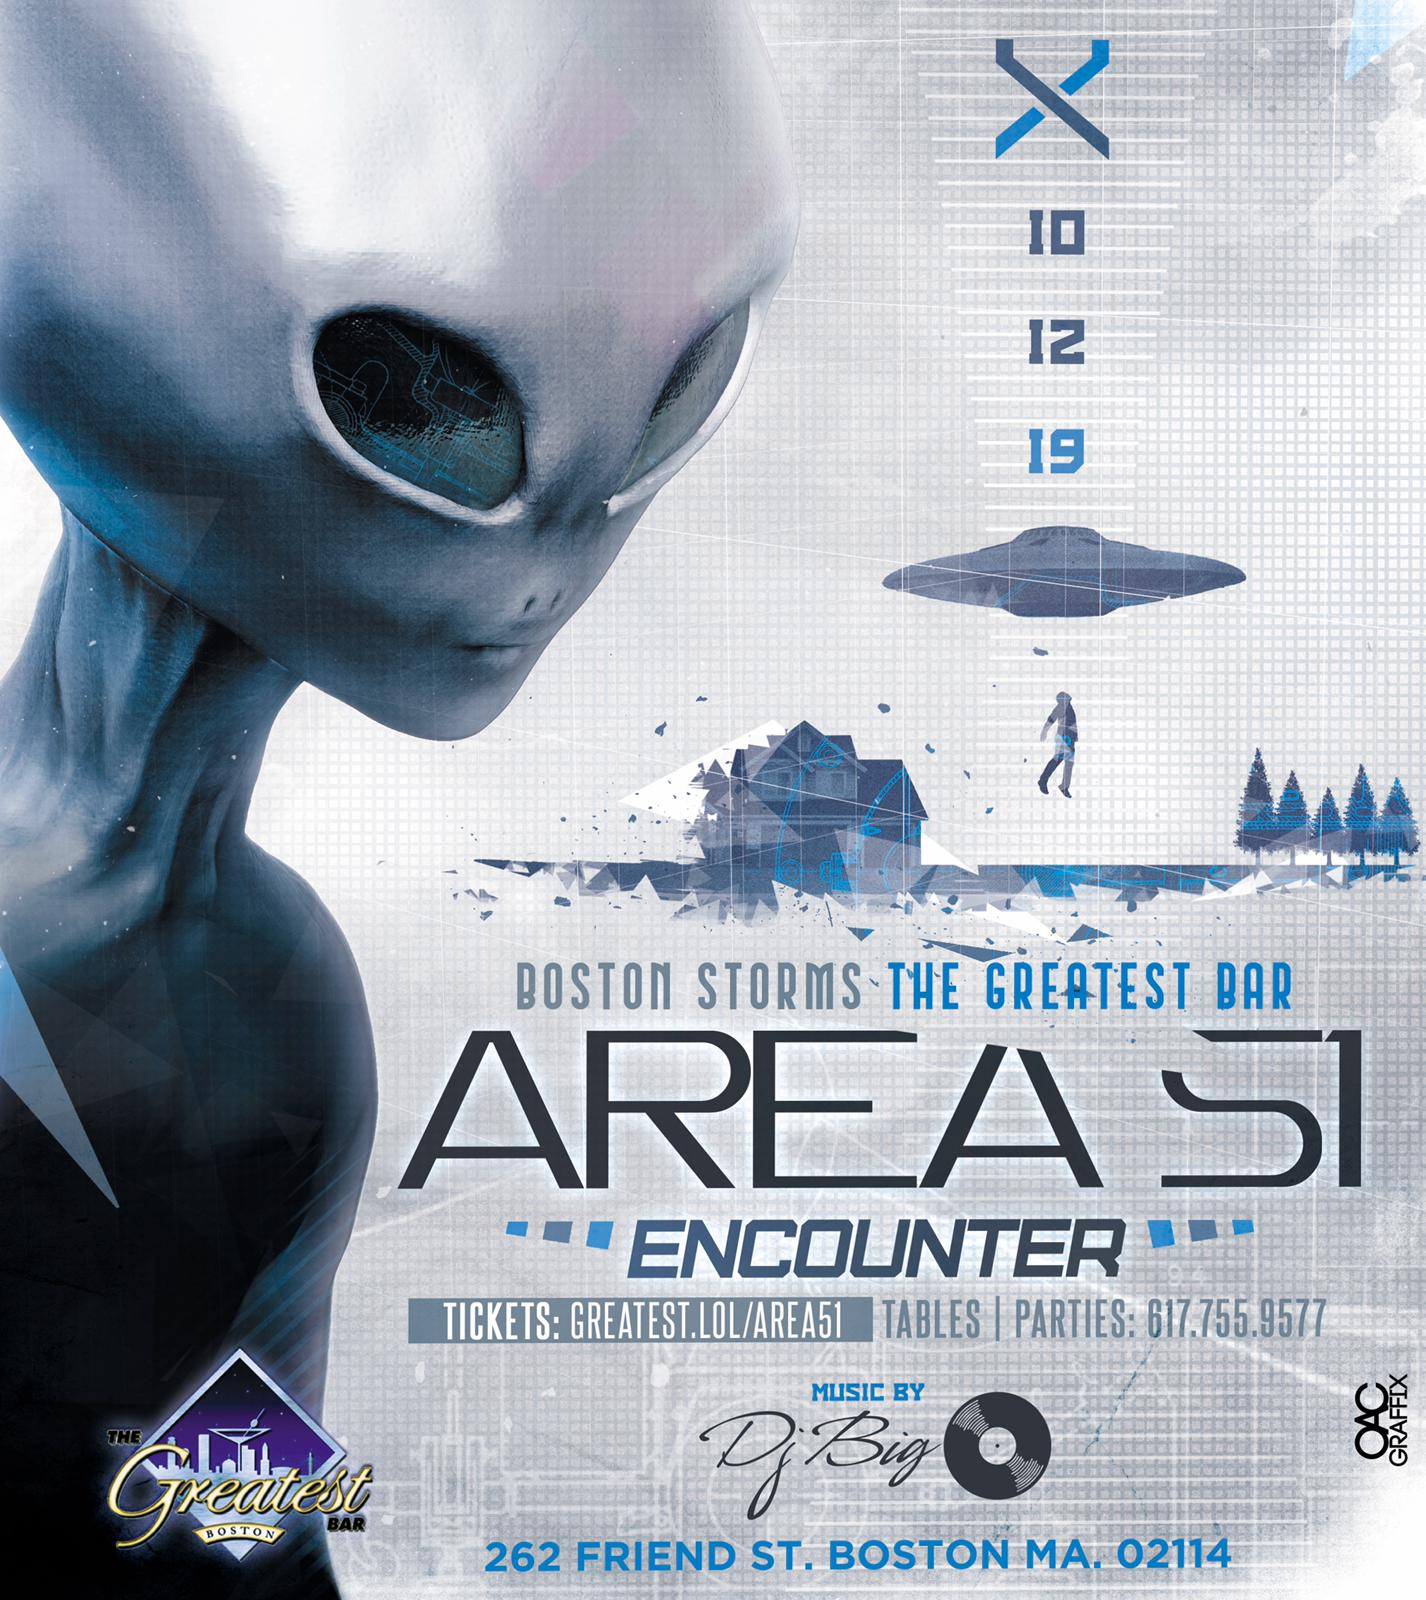 Area 51 PARTY!